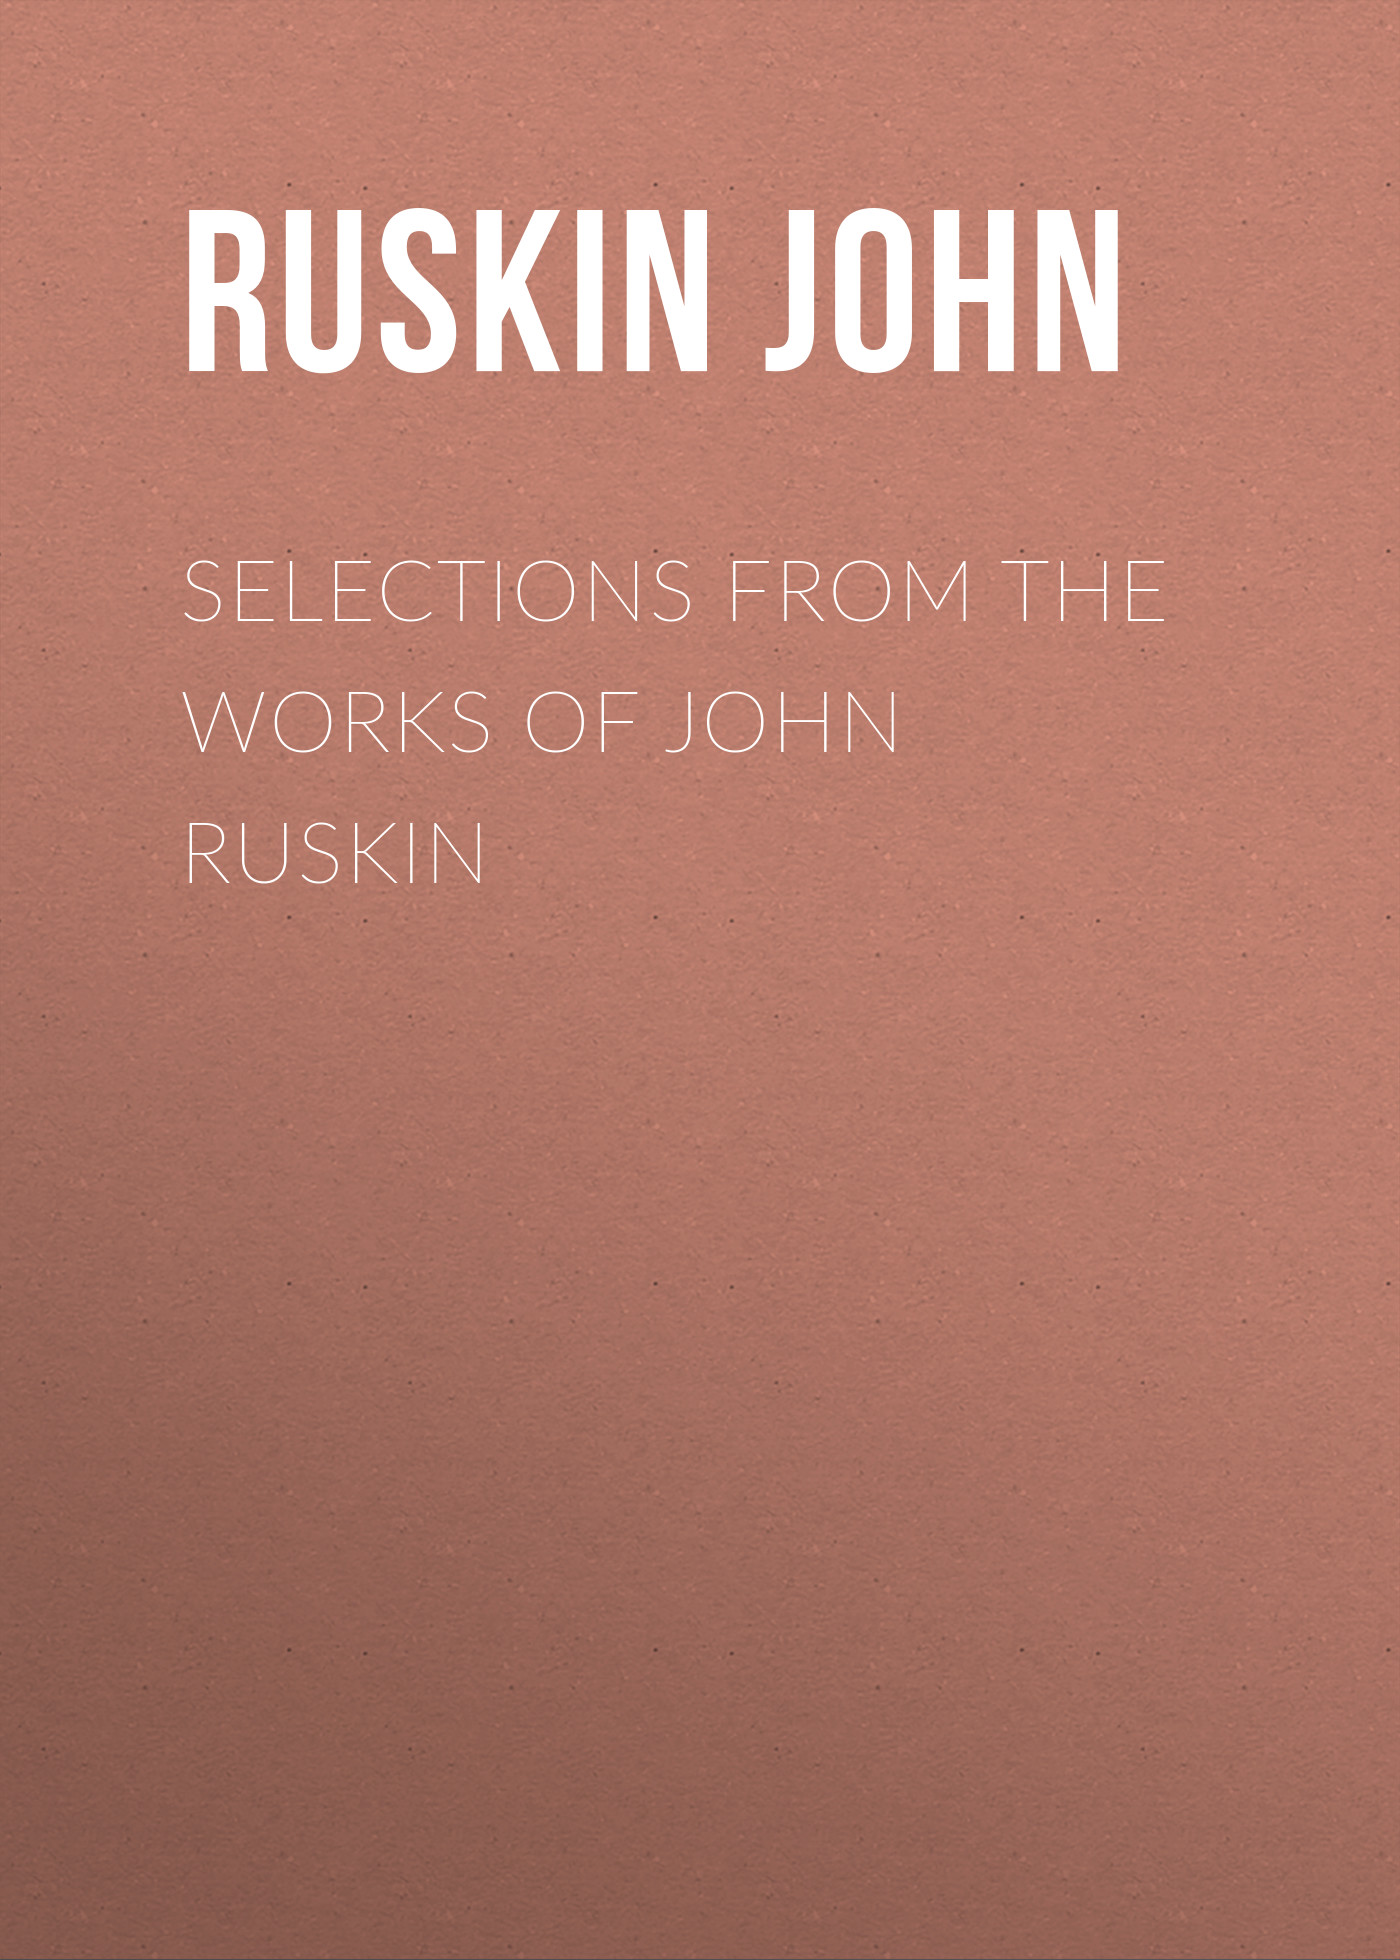 Ruskin John Selections From the Works of John Ruskin john ruskin the thoughts of john ruskin